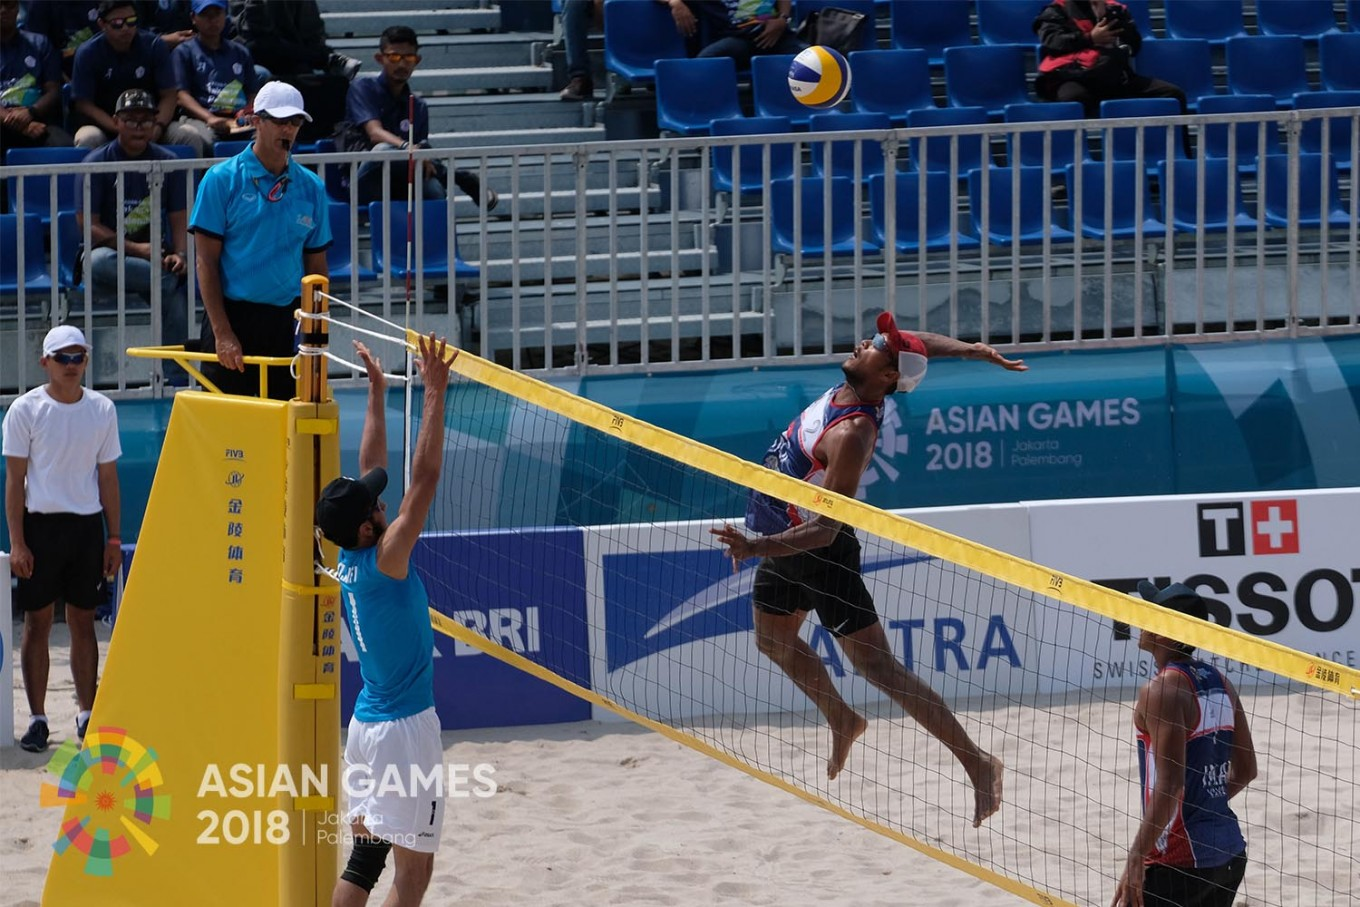 Indonesia's Ade Candra Rachmawan and Mohammad Ashfiya compete against Afghanistan's Ozair Mohammad Asifi - Mohib Jan Ahmadi in their men's beach volleyball semi-final during the 2018 Asian Games in Jakabaring Sport City, Palembang, August.19. JP/Jerry Adiguna